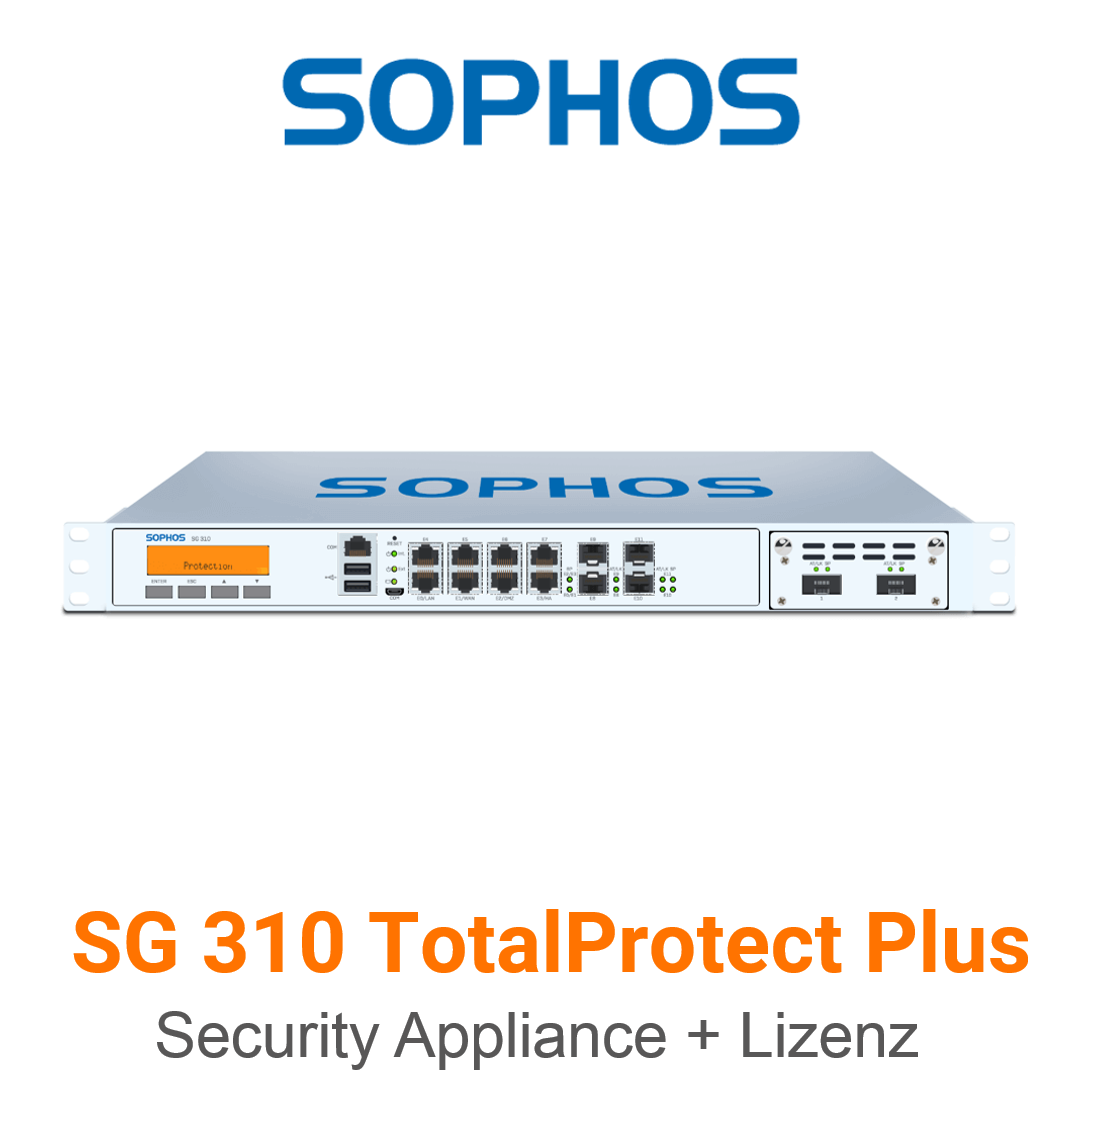 Sophos SG 310 TotalProtect Plus Bundle (Hardware + Lizenz)